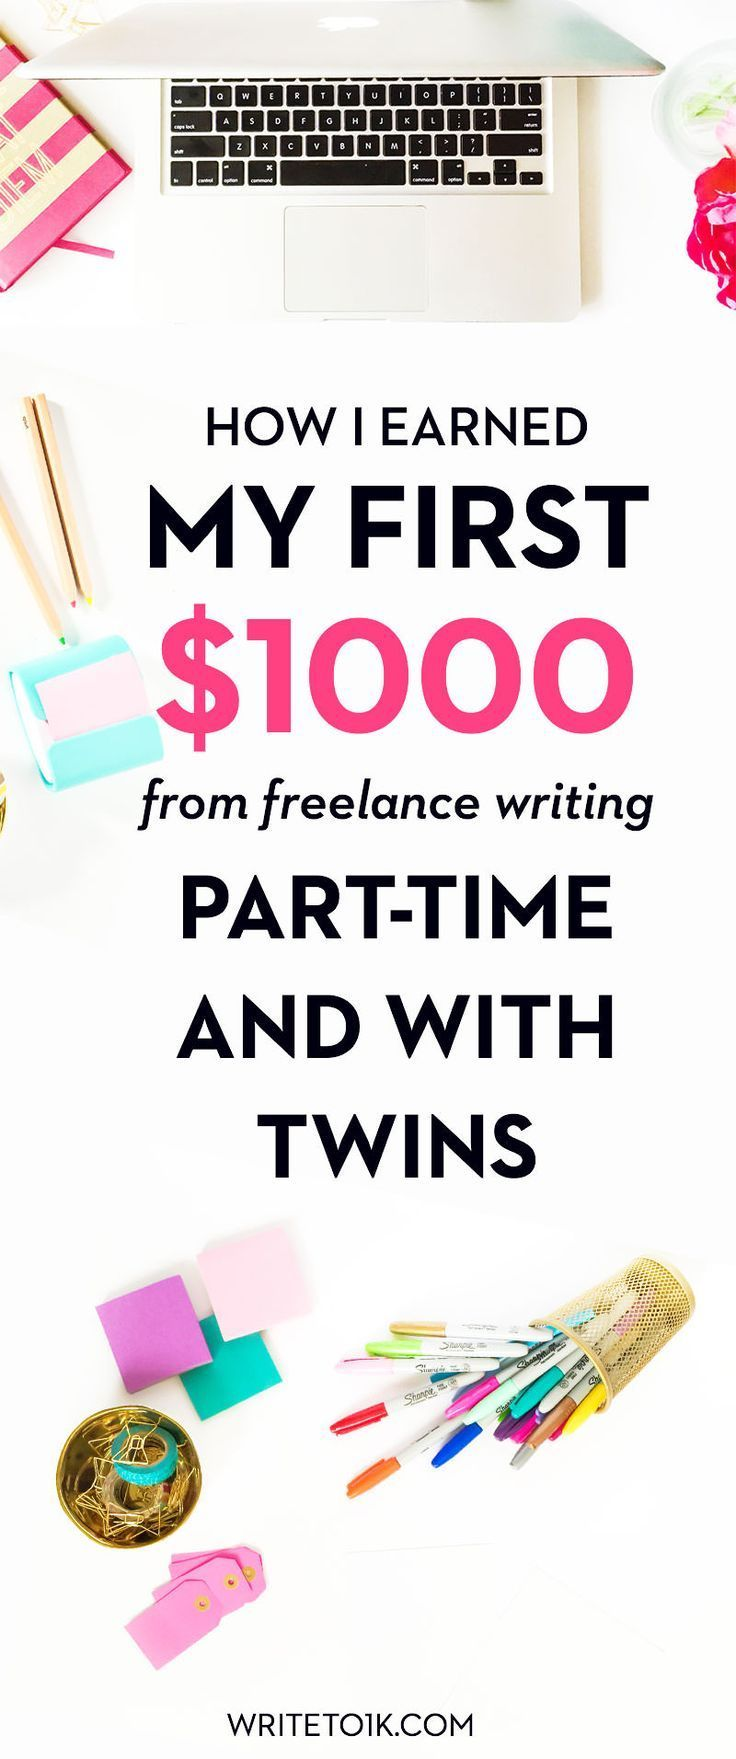 Are you a mom blogger? Want to earn some extra cash on the side? Check out this awesome course to teach you how to make money as a freelance writer! This is the fastest way to get money online for sure! | Side hustle | get paid to blog | freelance writing